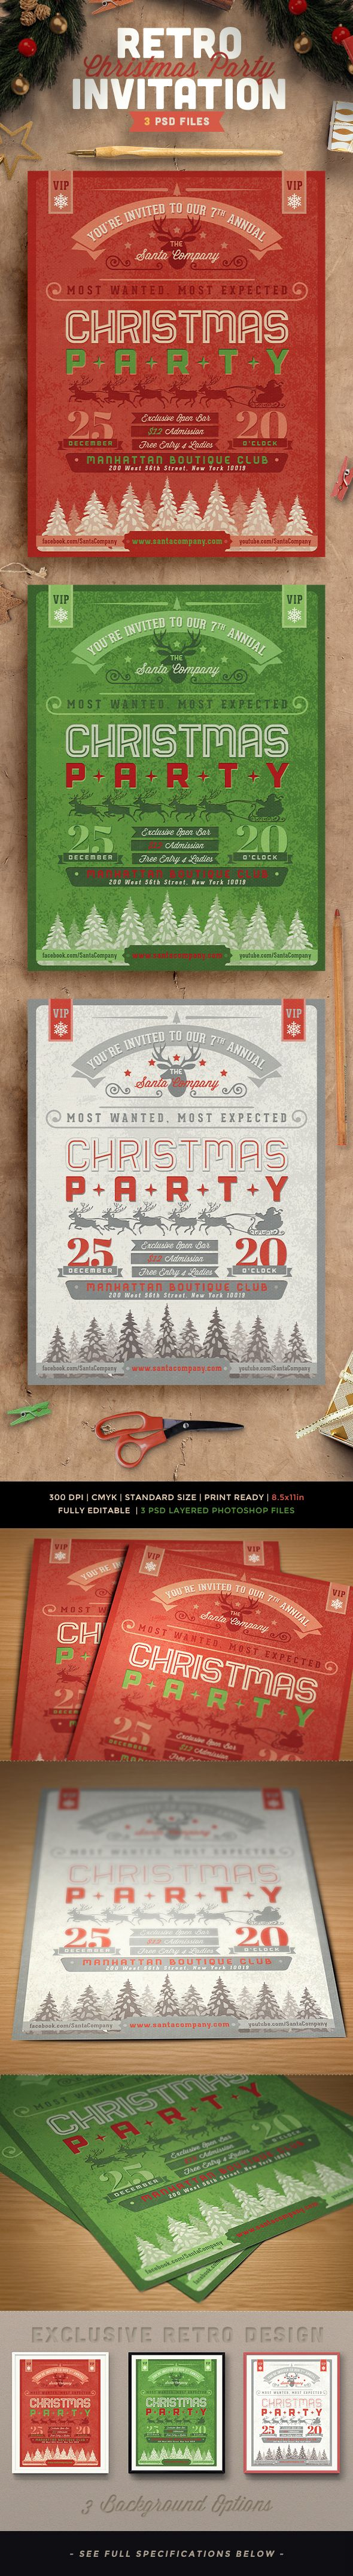 Retro Christmas Party Invitation on Behance